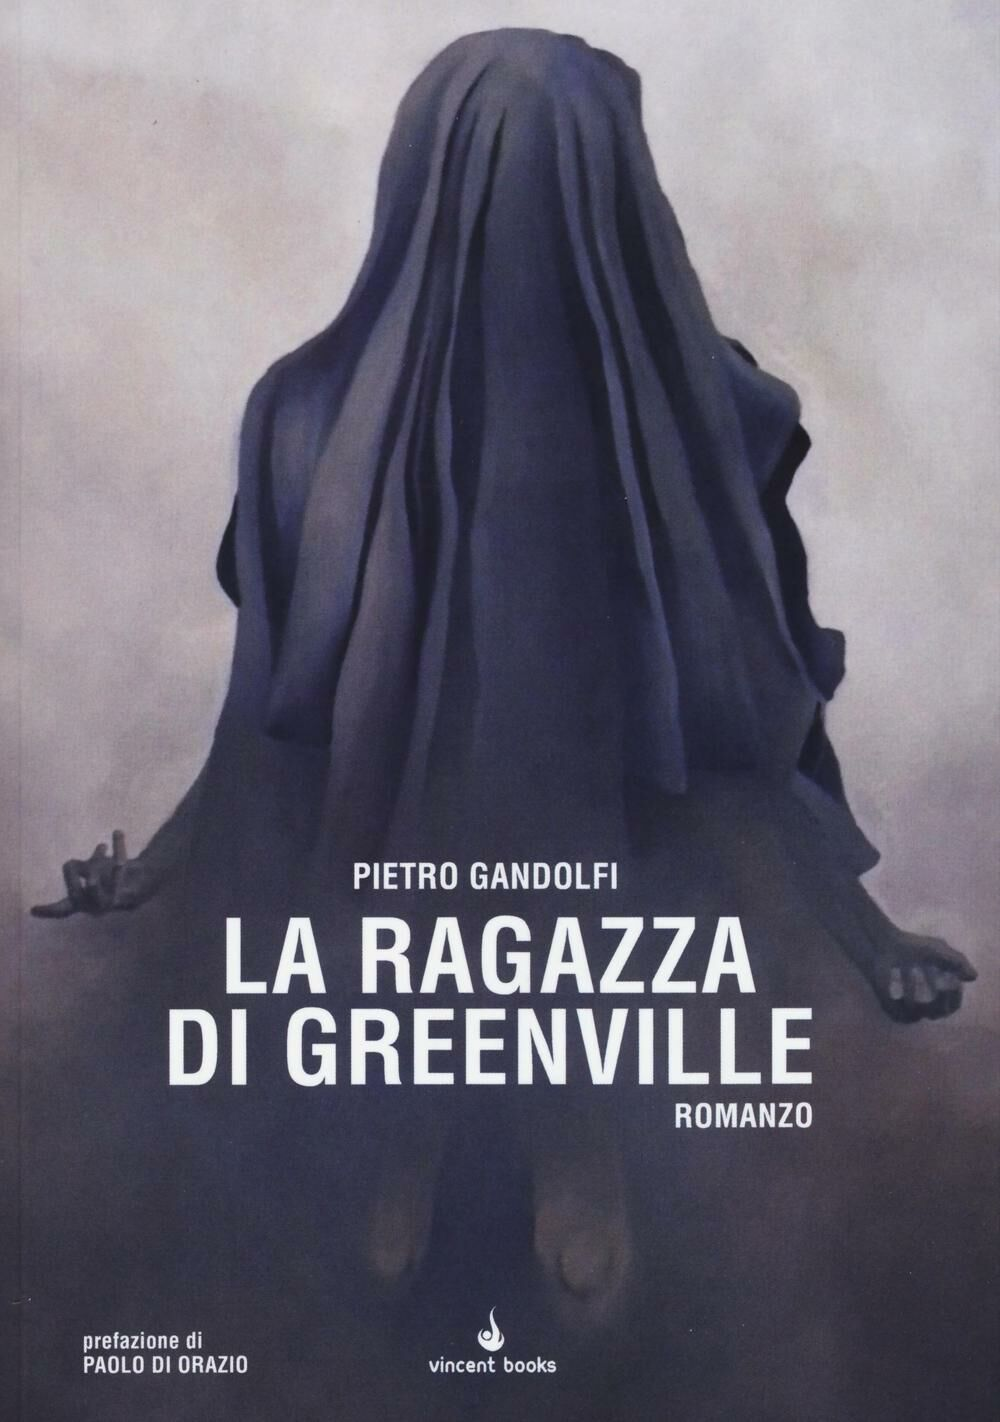 La ragazza di Greenville